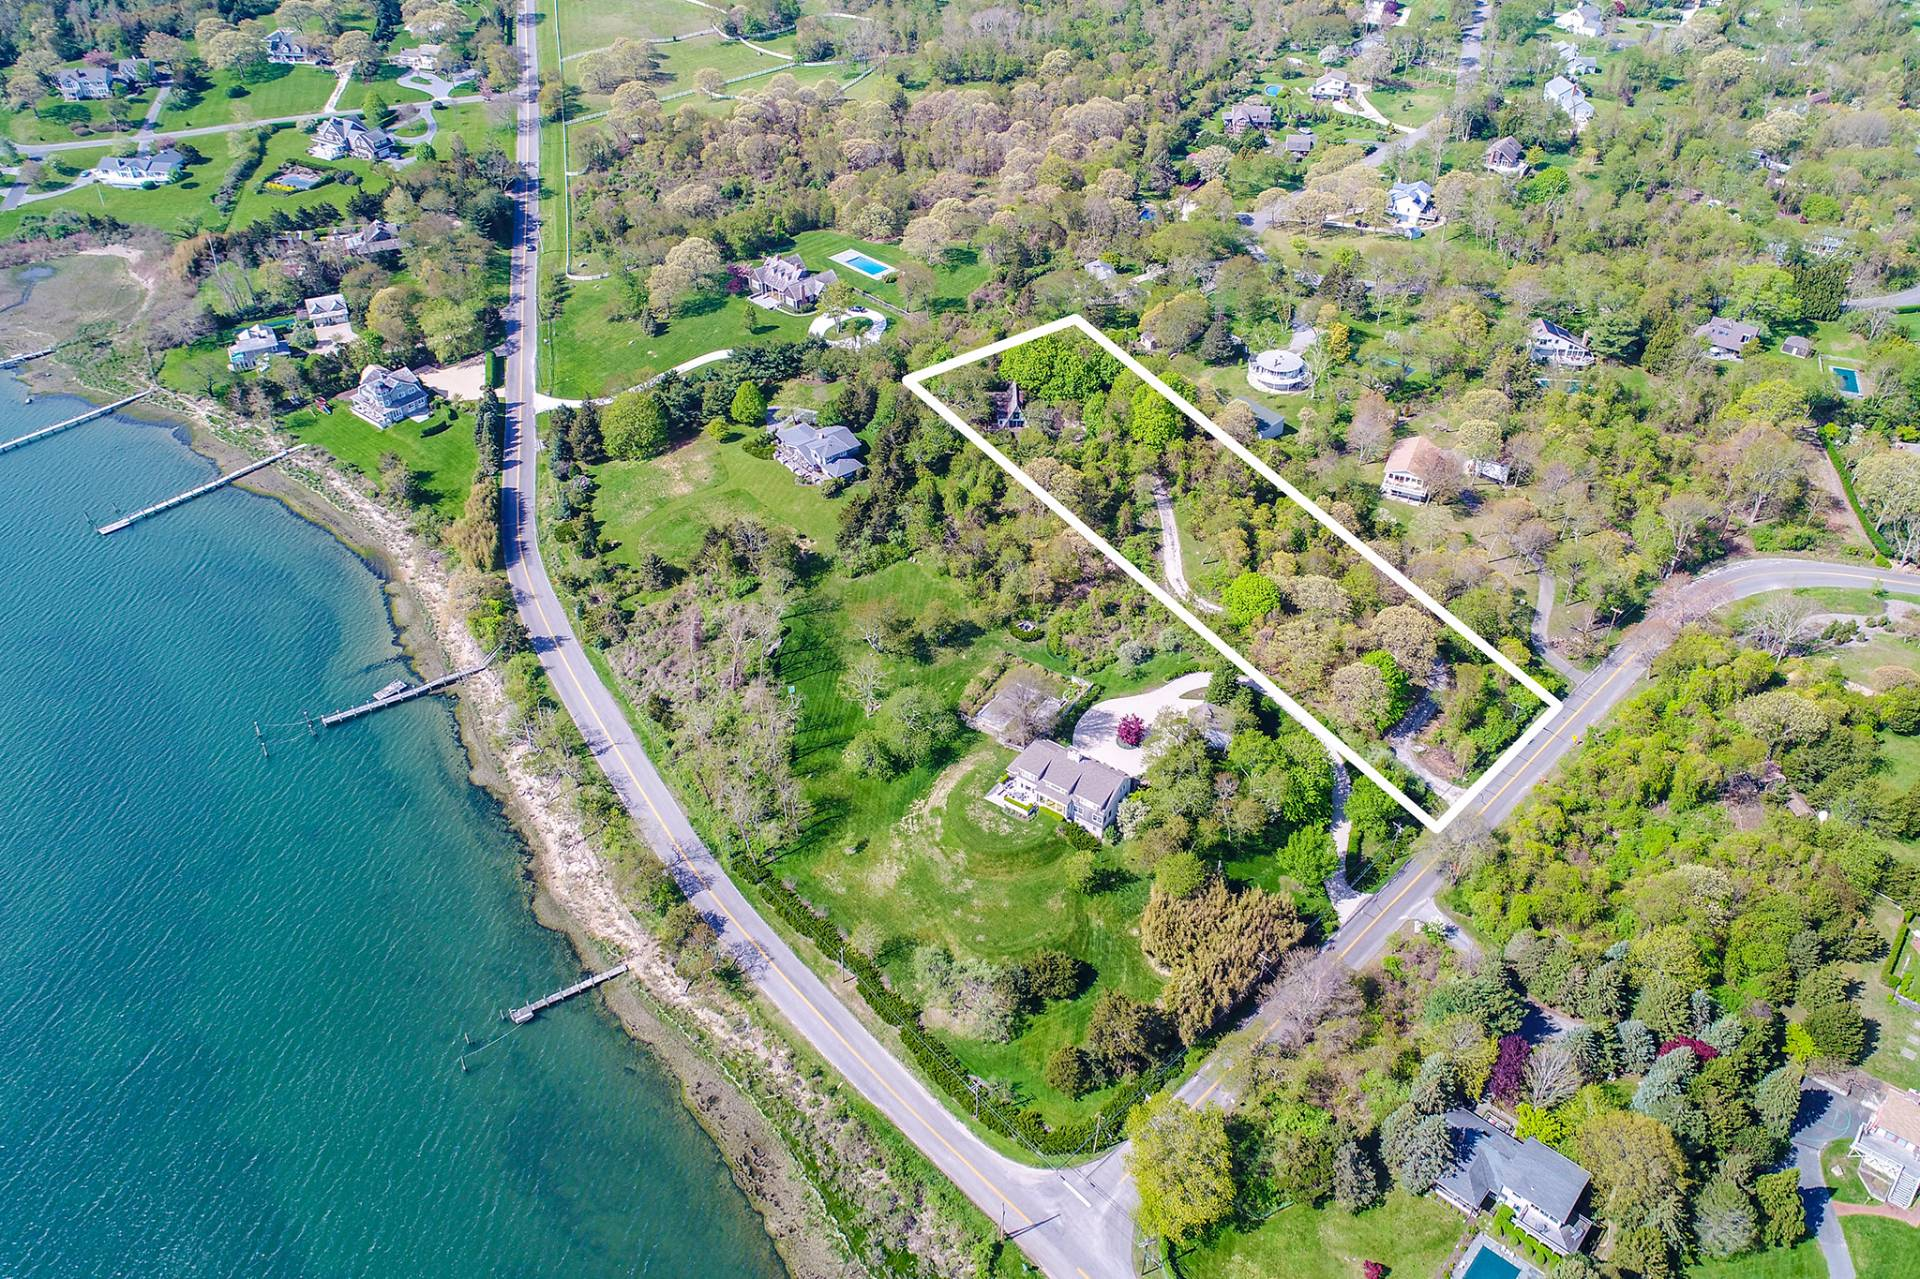 Single Family Home for Sale at Shelter Island Harborview Mid Century A-Frame 62 Cobbetts Lane, Shelter Island, New York